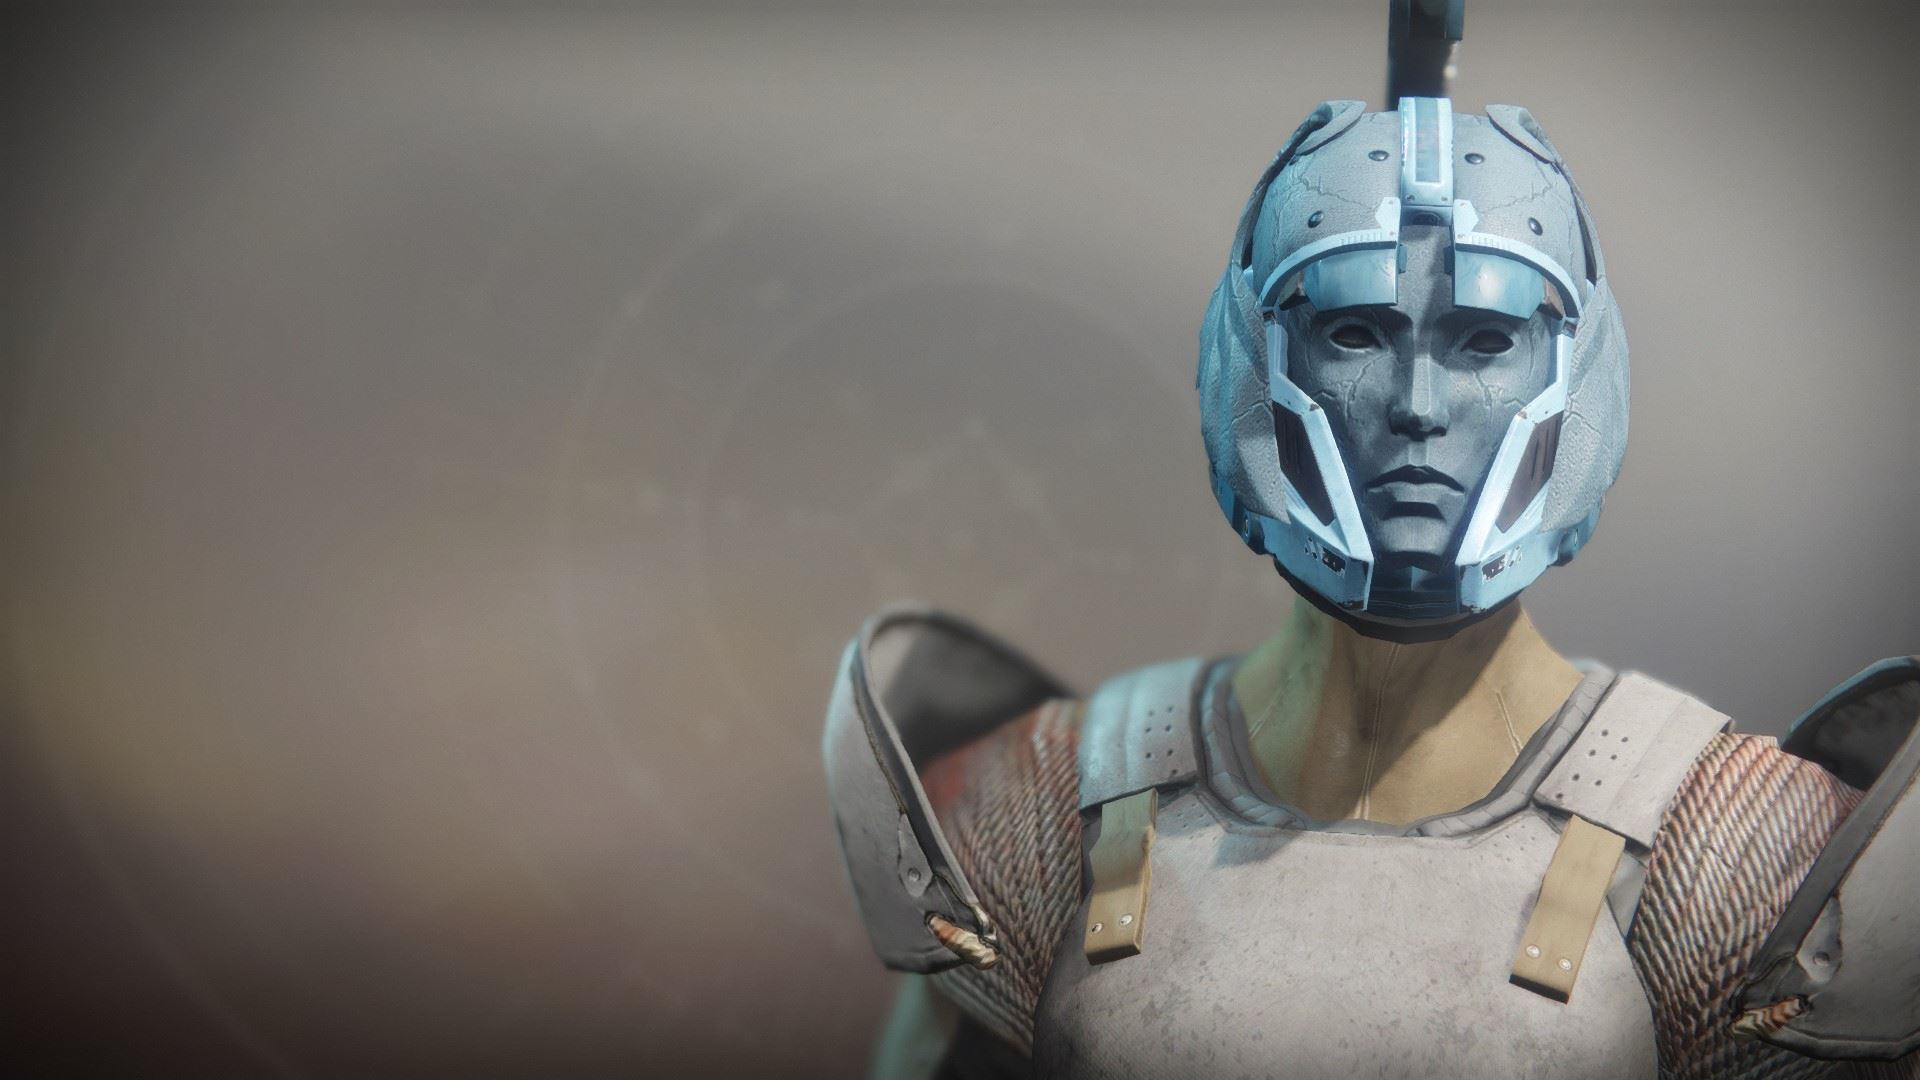 An in-game render of the Eternal Warrior.